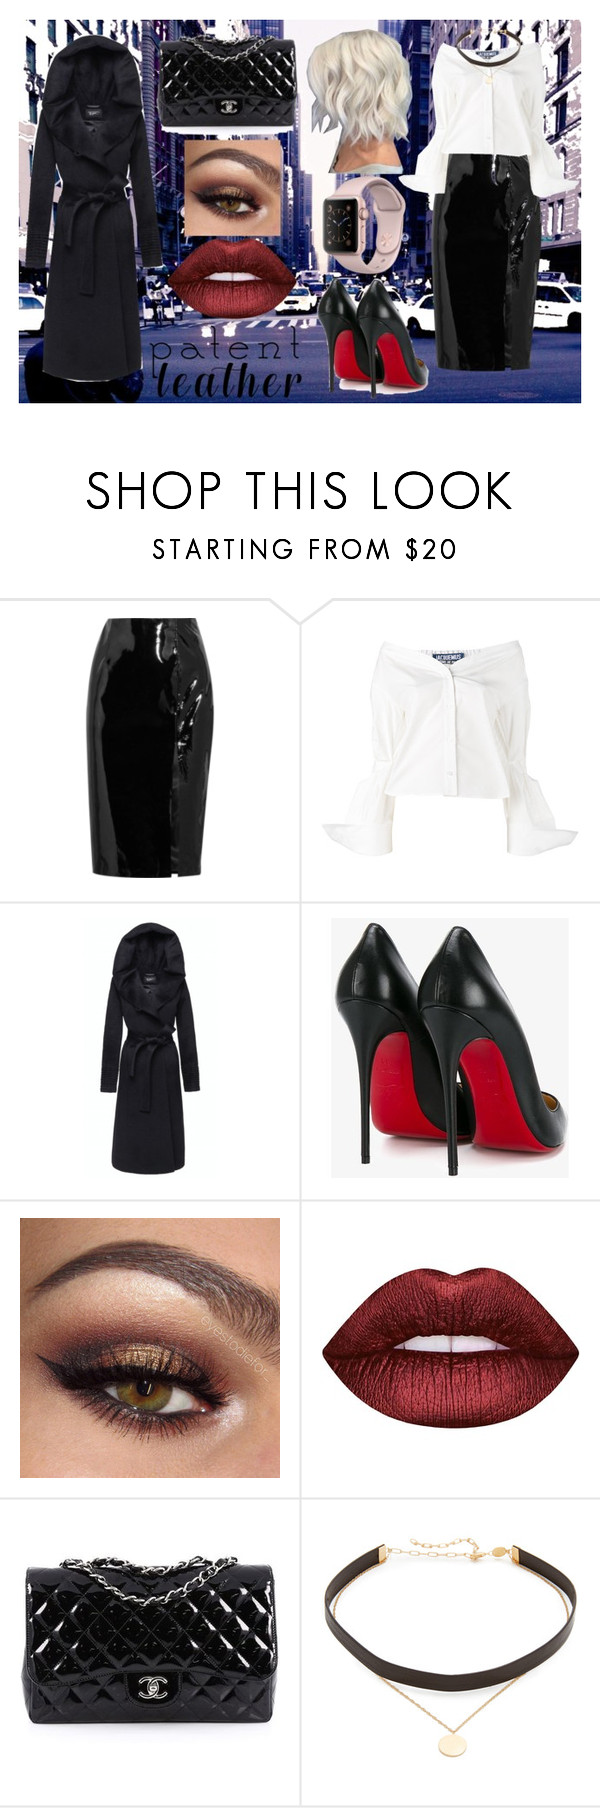 """""""Patent Leather"""" by real-21c ❤ liked on Polyvore featuring Topshop Unique, Jacquemus, Christian Louboutin, Lime Crime, Chanel and Jennifer Zeuner"""